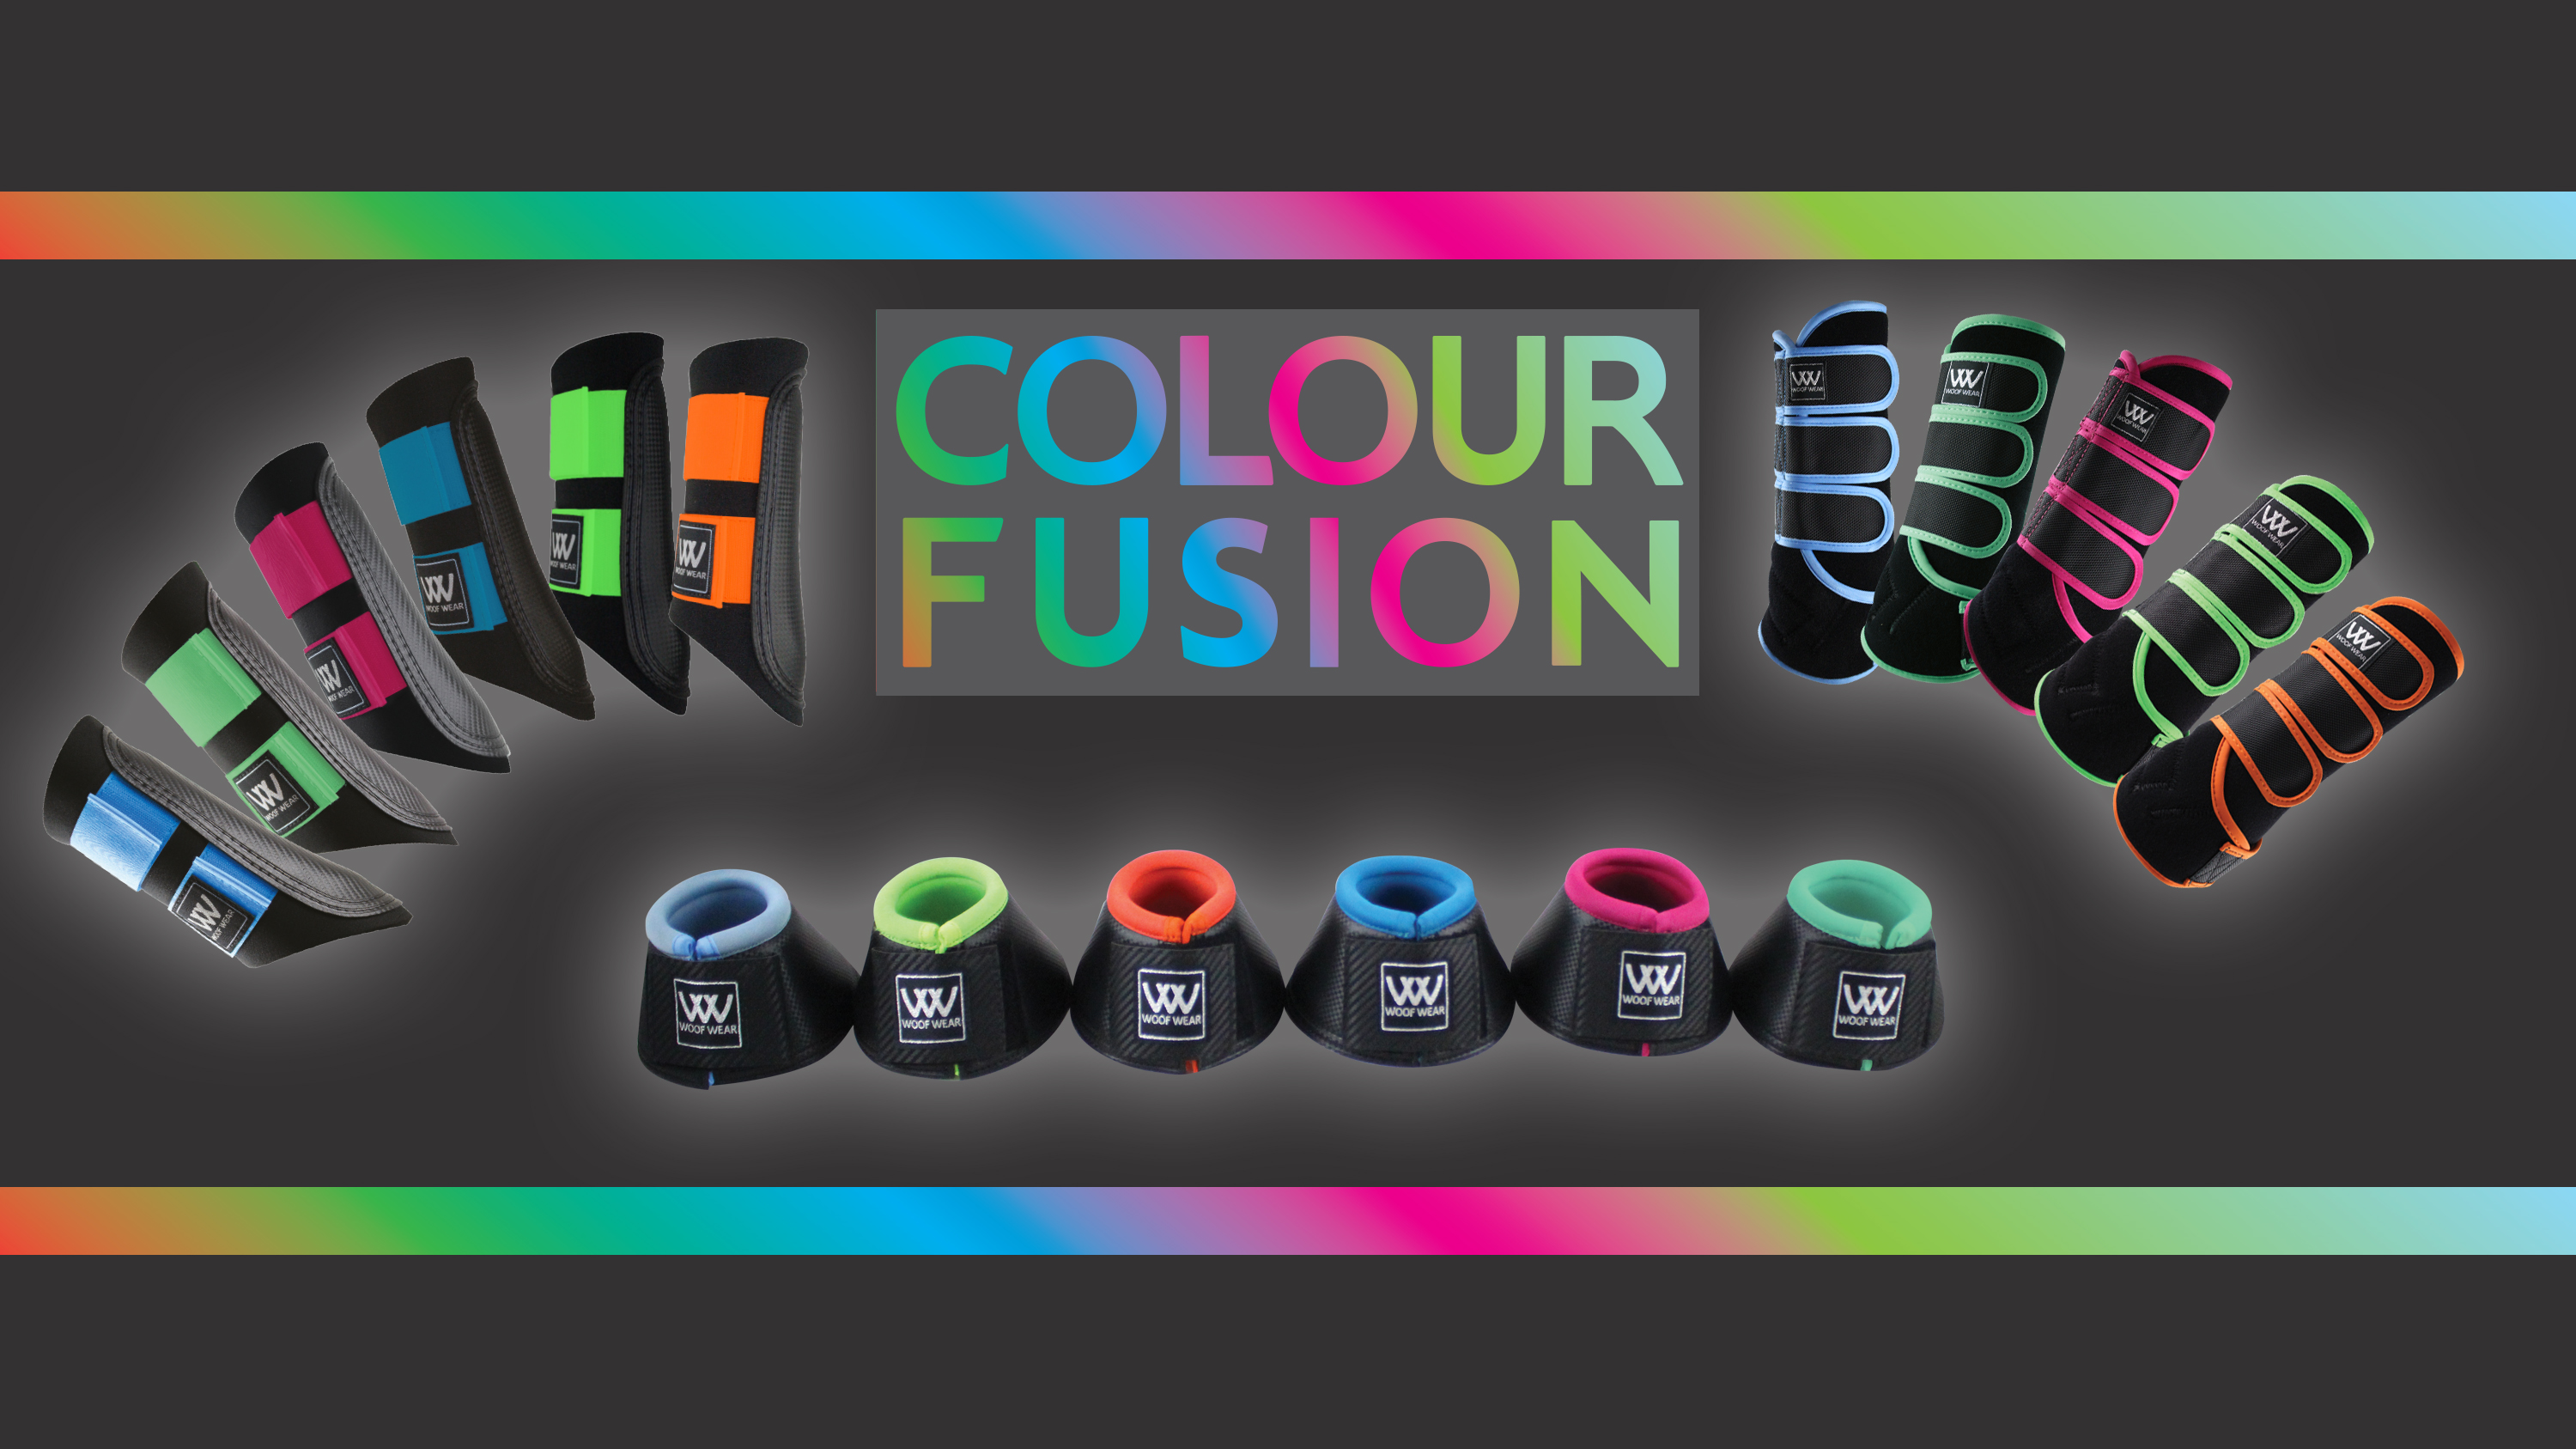 View all Woof Fusion products